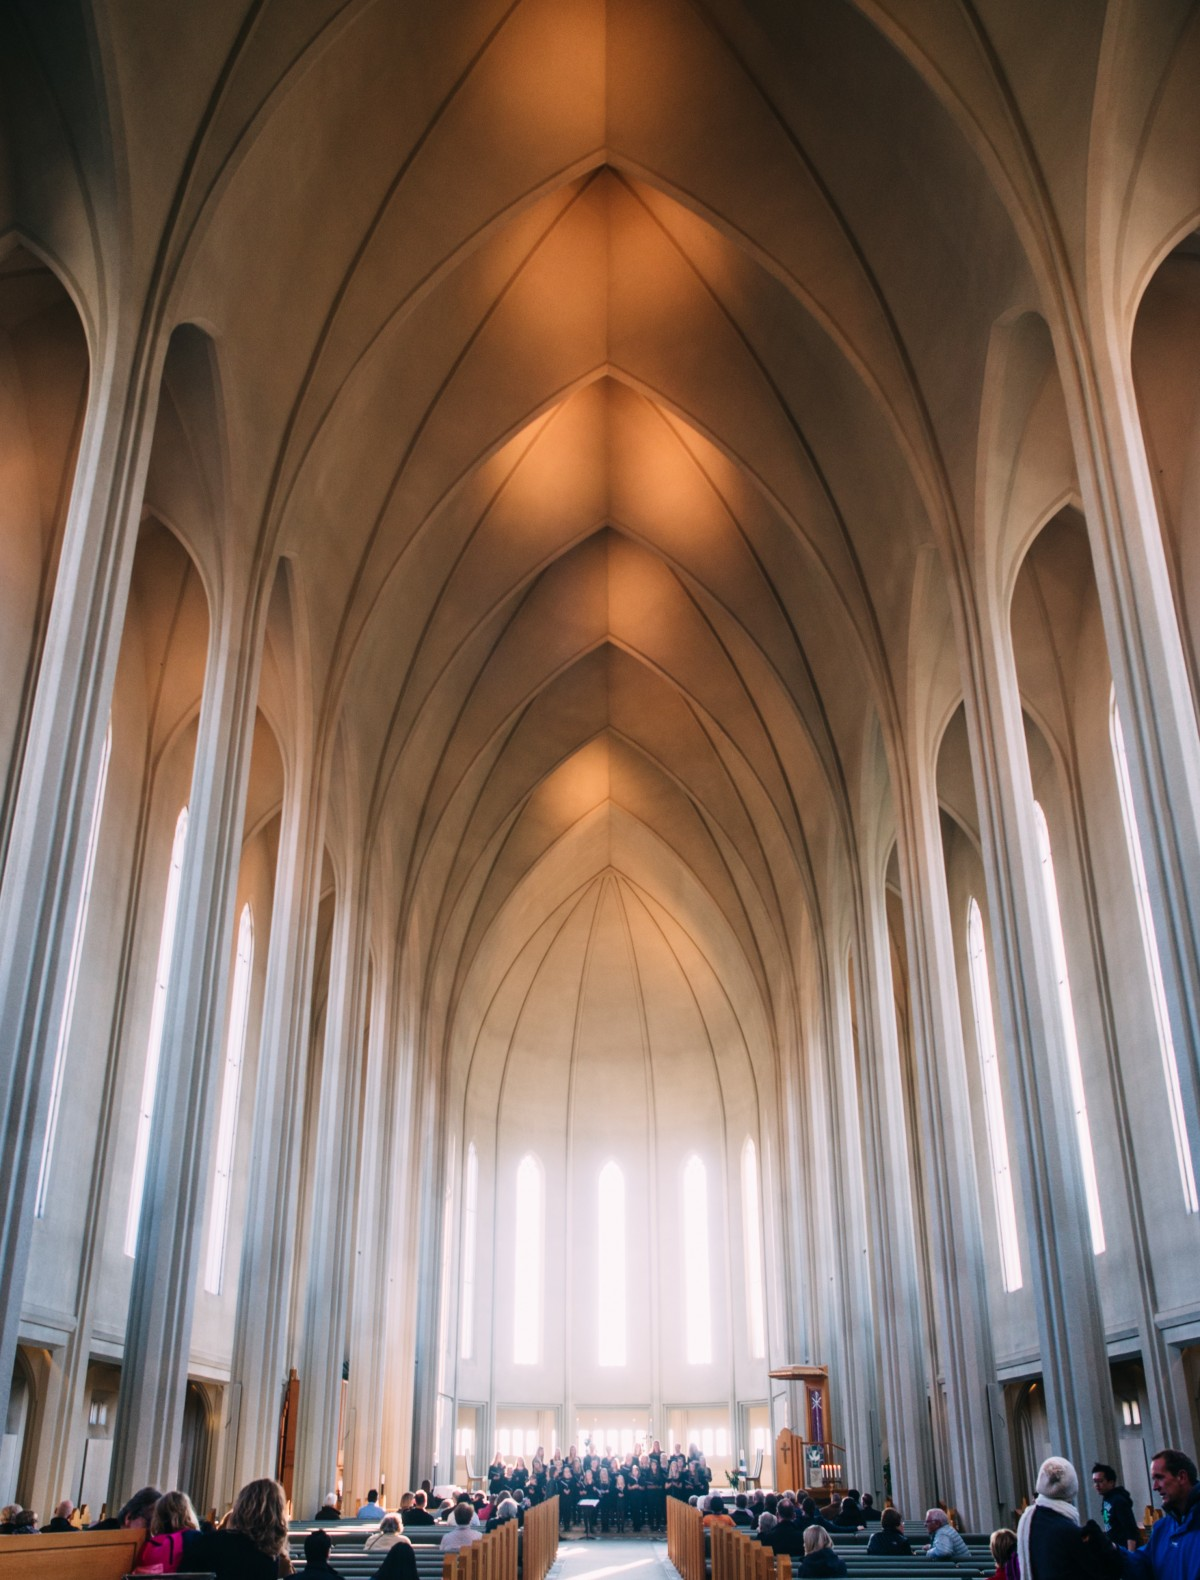 A sunlit cathedral with people in the pews